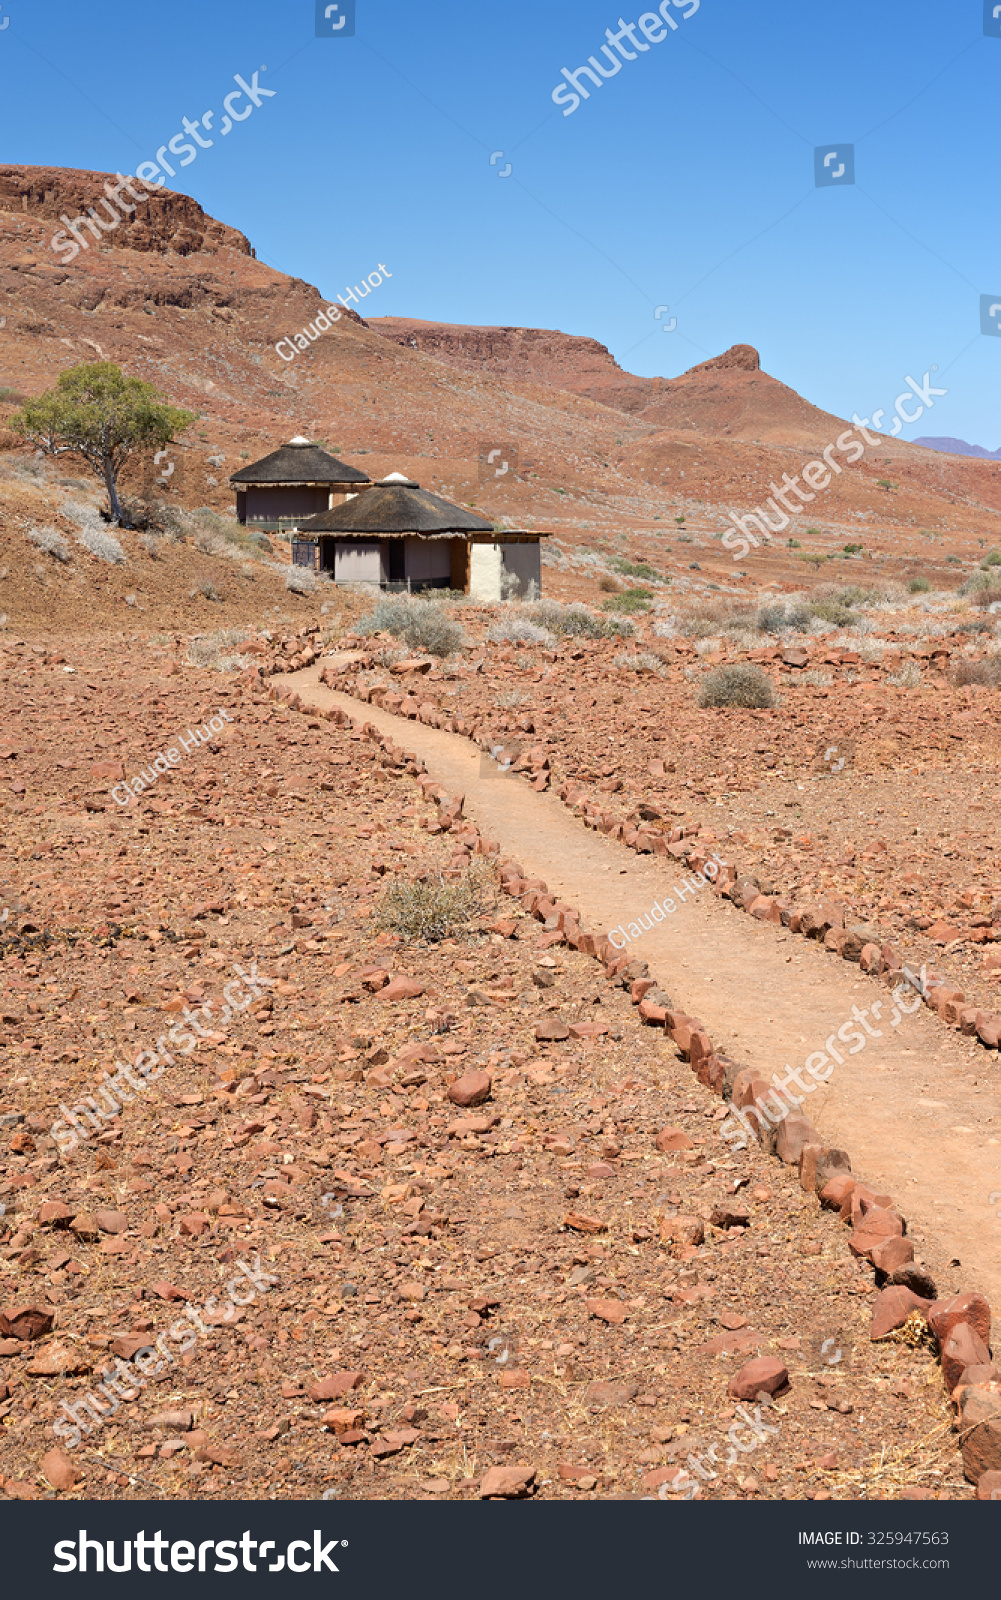 Pathway leading to thatched units in the desertic region at Damaraland Camp, Namibia